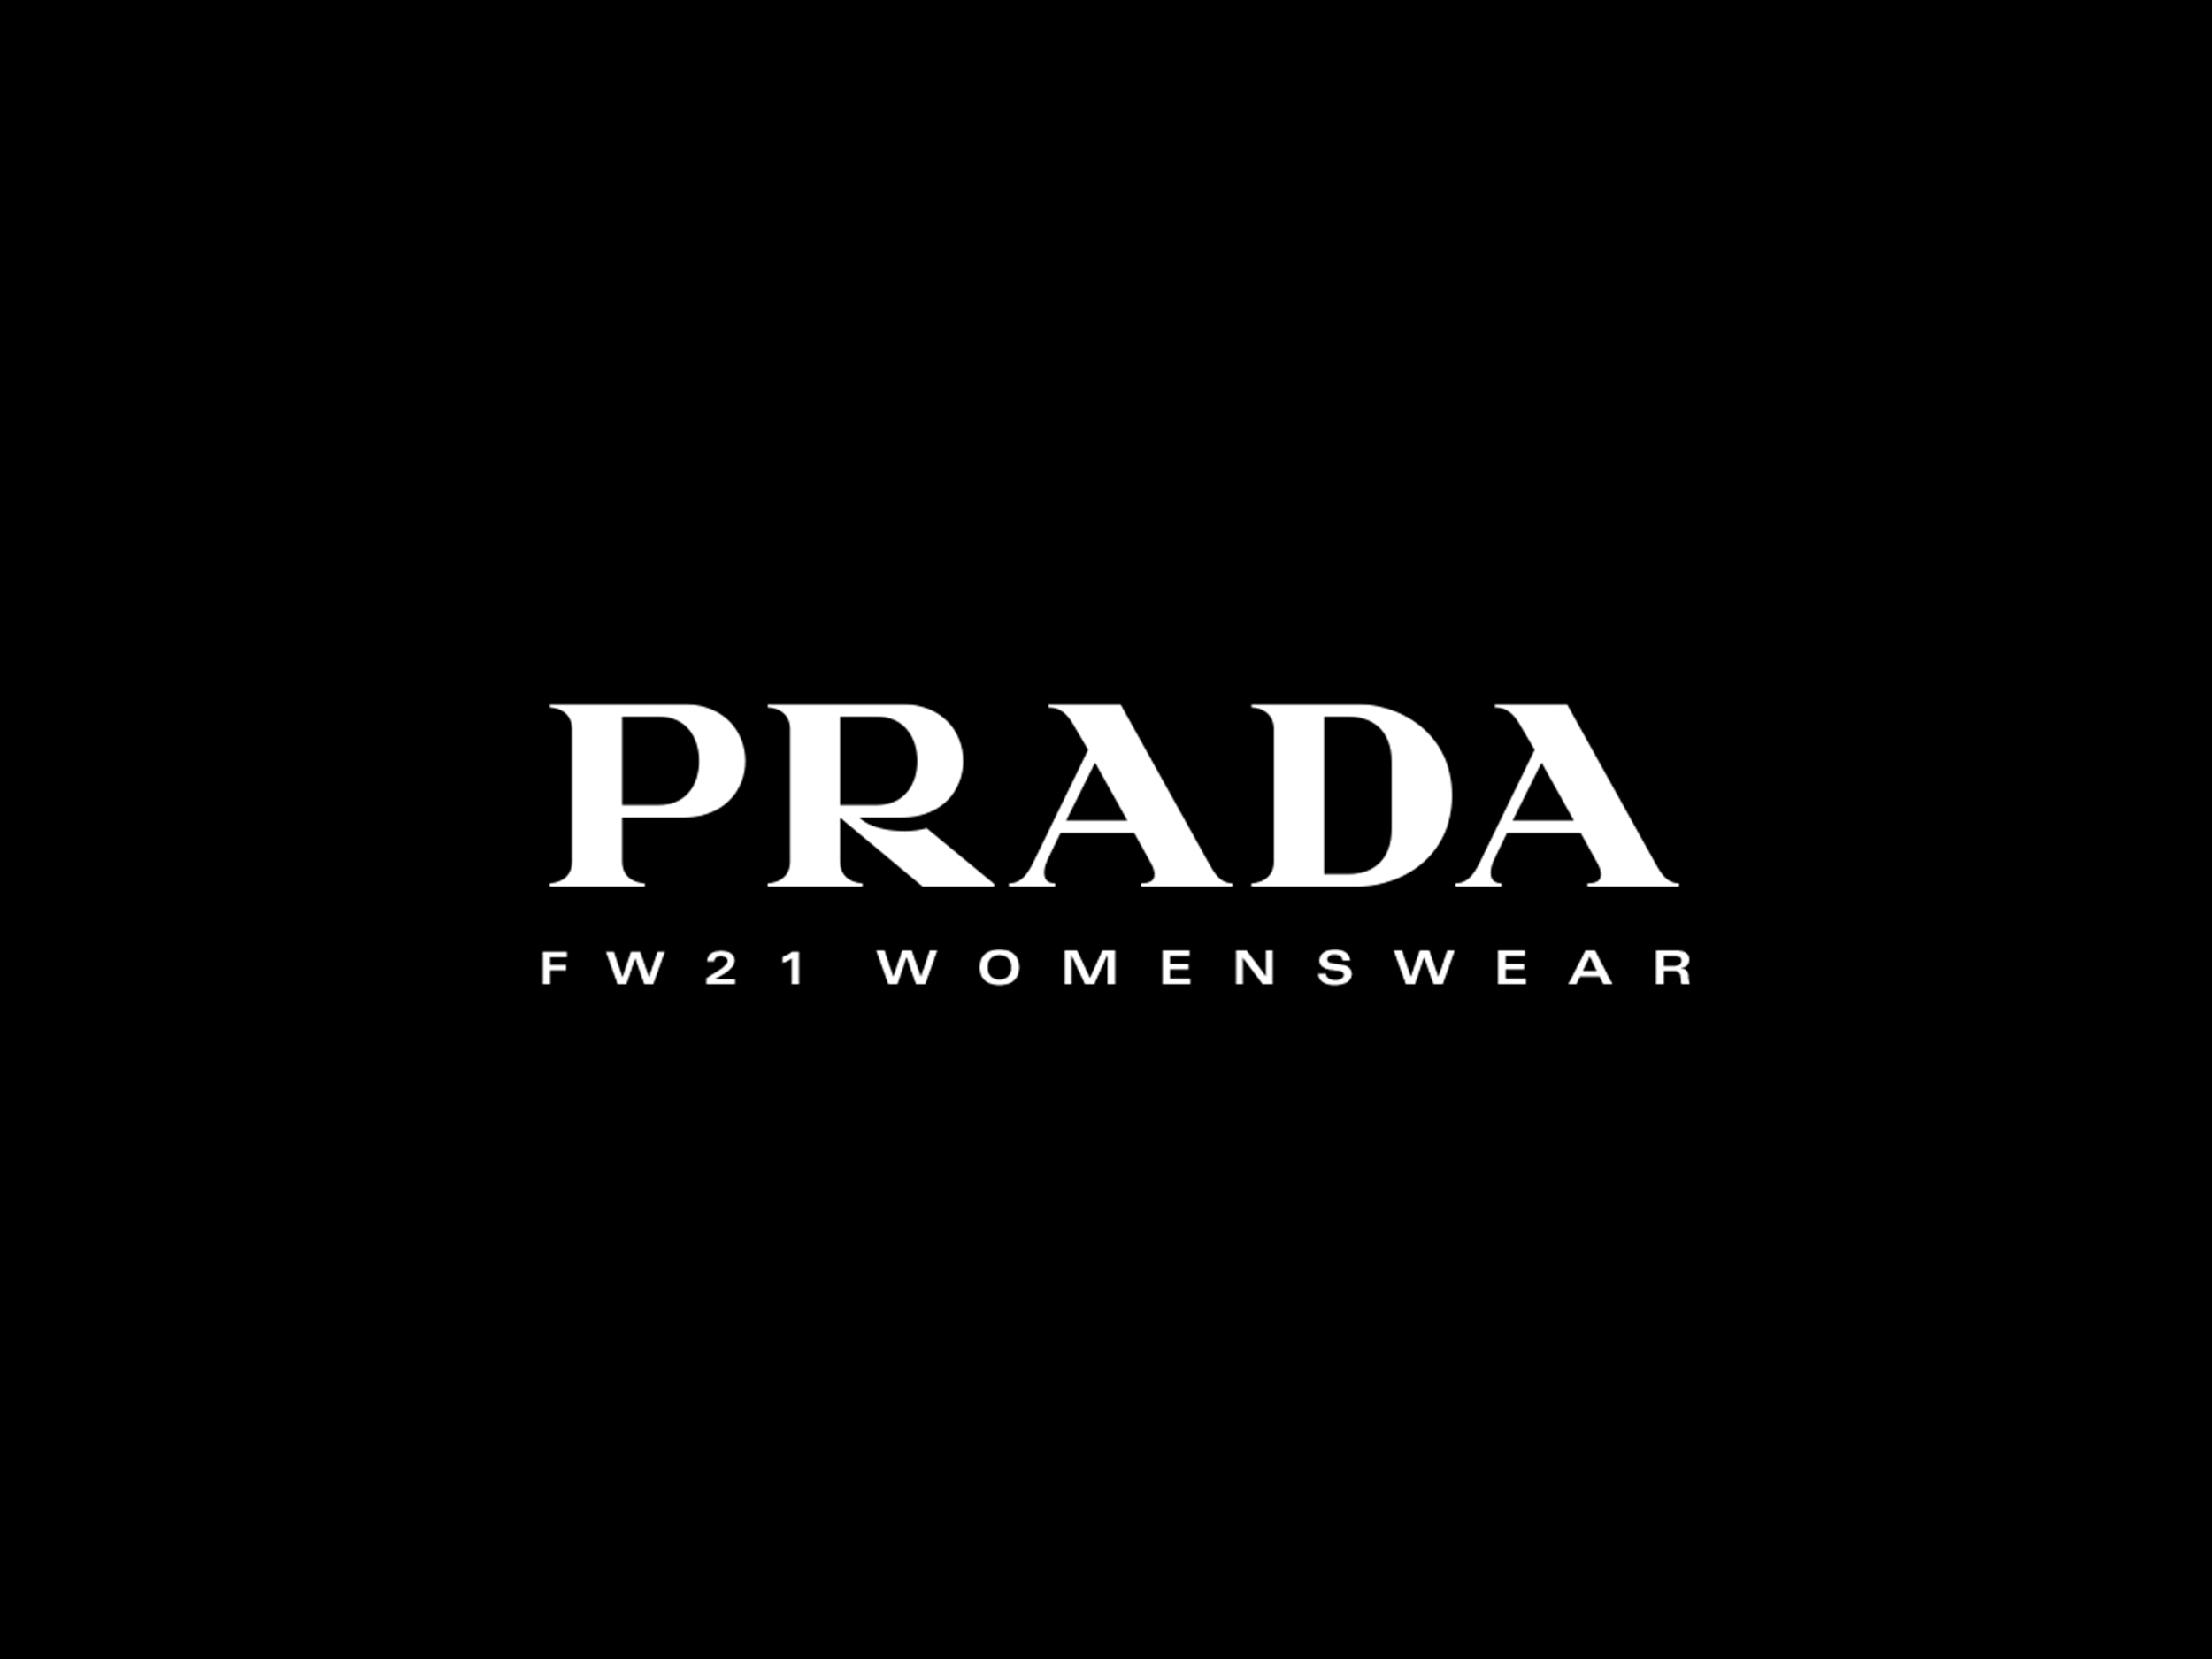 Livestream Prada's Menswear Fall/Winter 2021 collection here